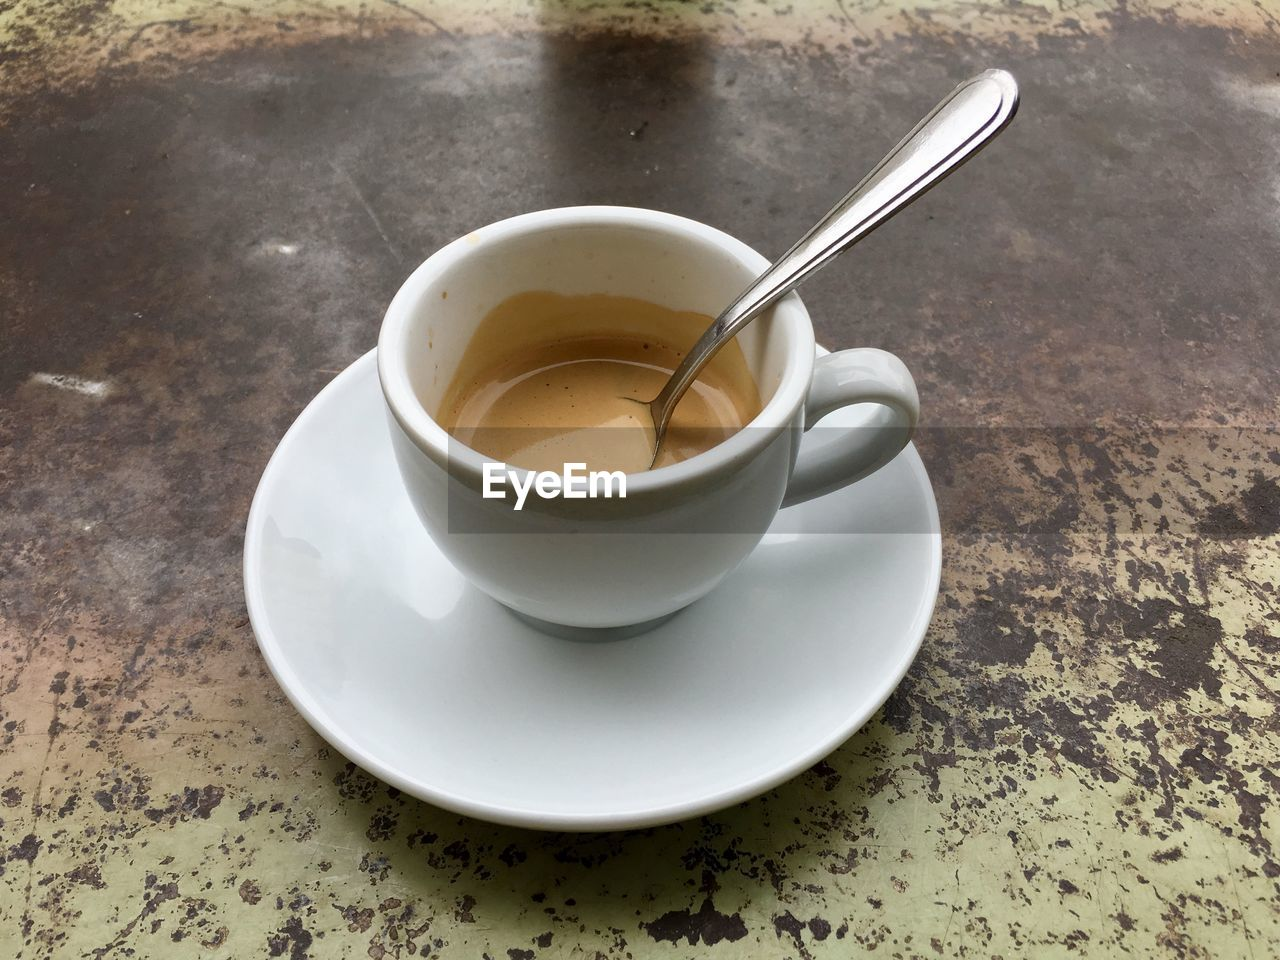 food and drink, saucer, refreshment, table, high angle view, no people, drink, freshness, indoors, close-up, day